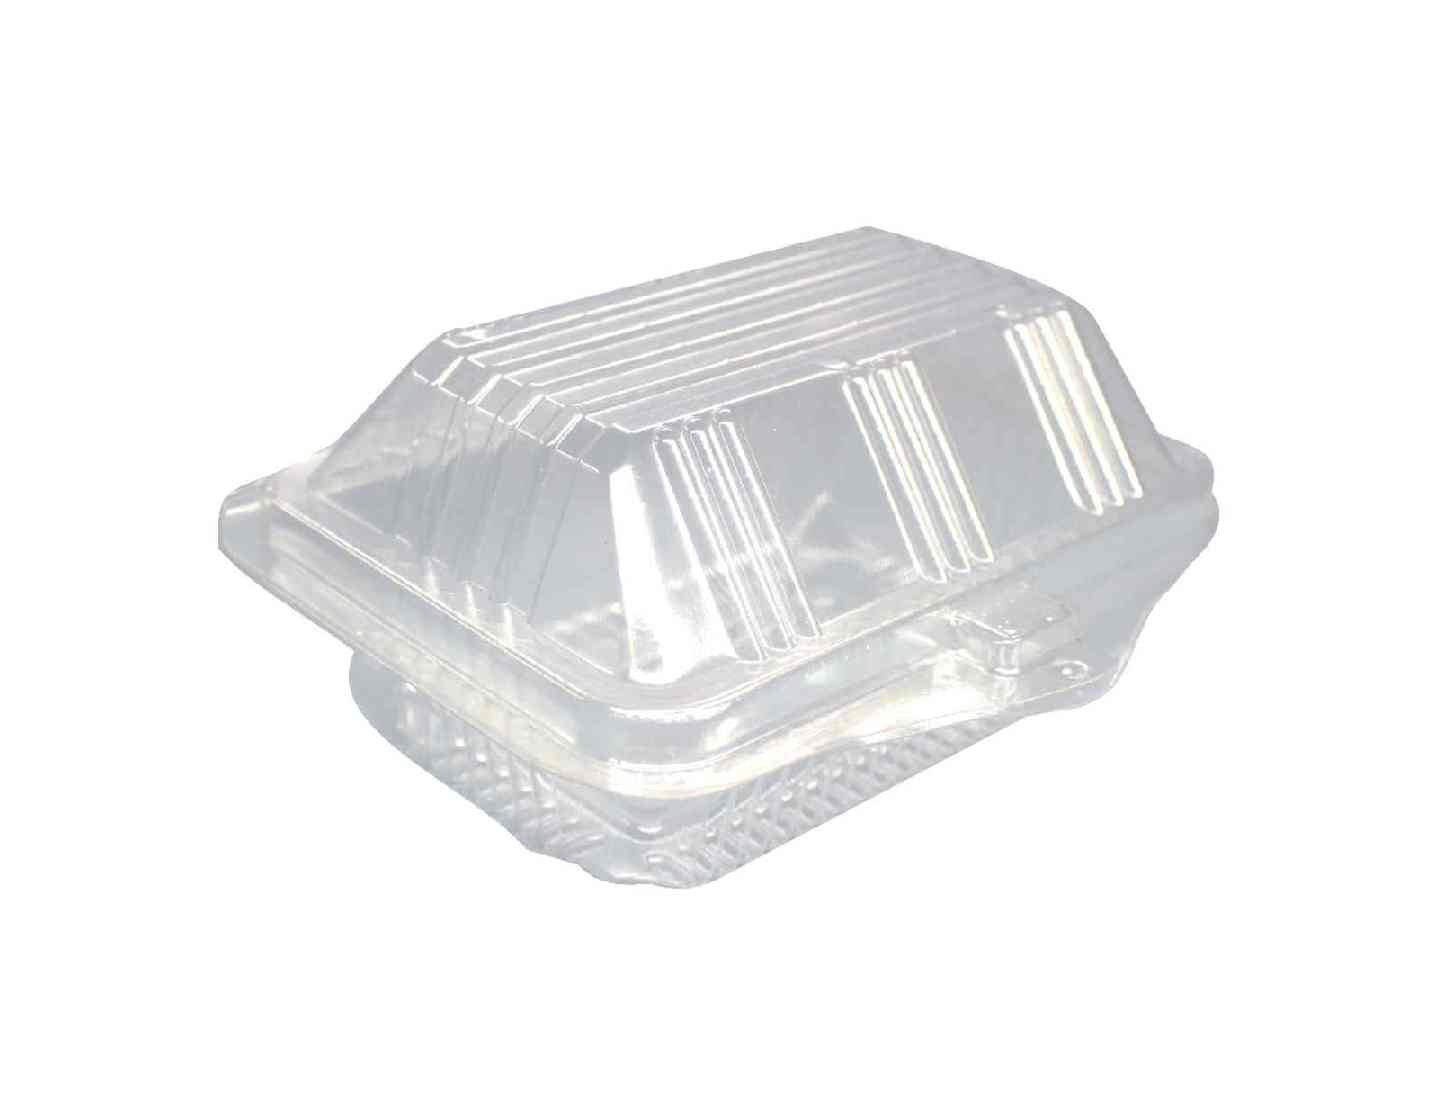 Choice-Pac L1P-1152L Polyethylene Terephthalate Tri Top Deep Herb Rectangular Clamshell Container, 5-1/16'' Length x 4-1/8'' Width x 2-1/4'' Height, Clear (Case of 1000)